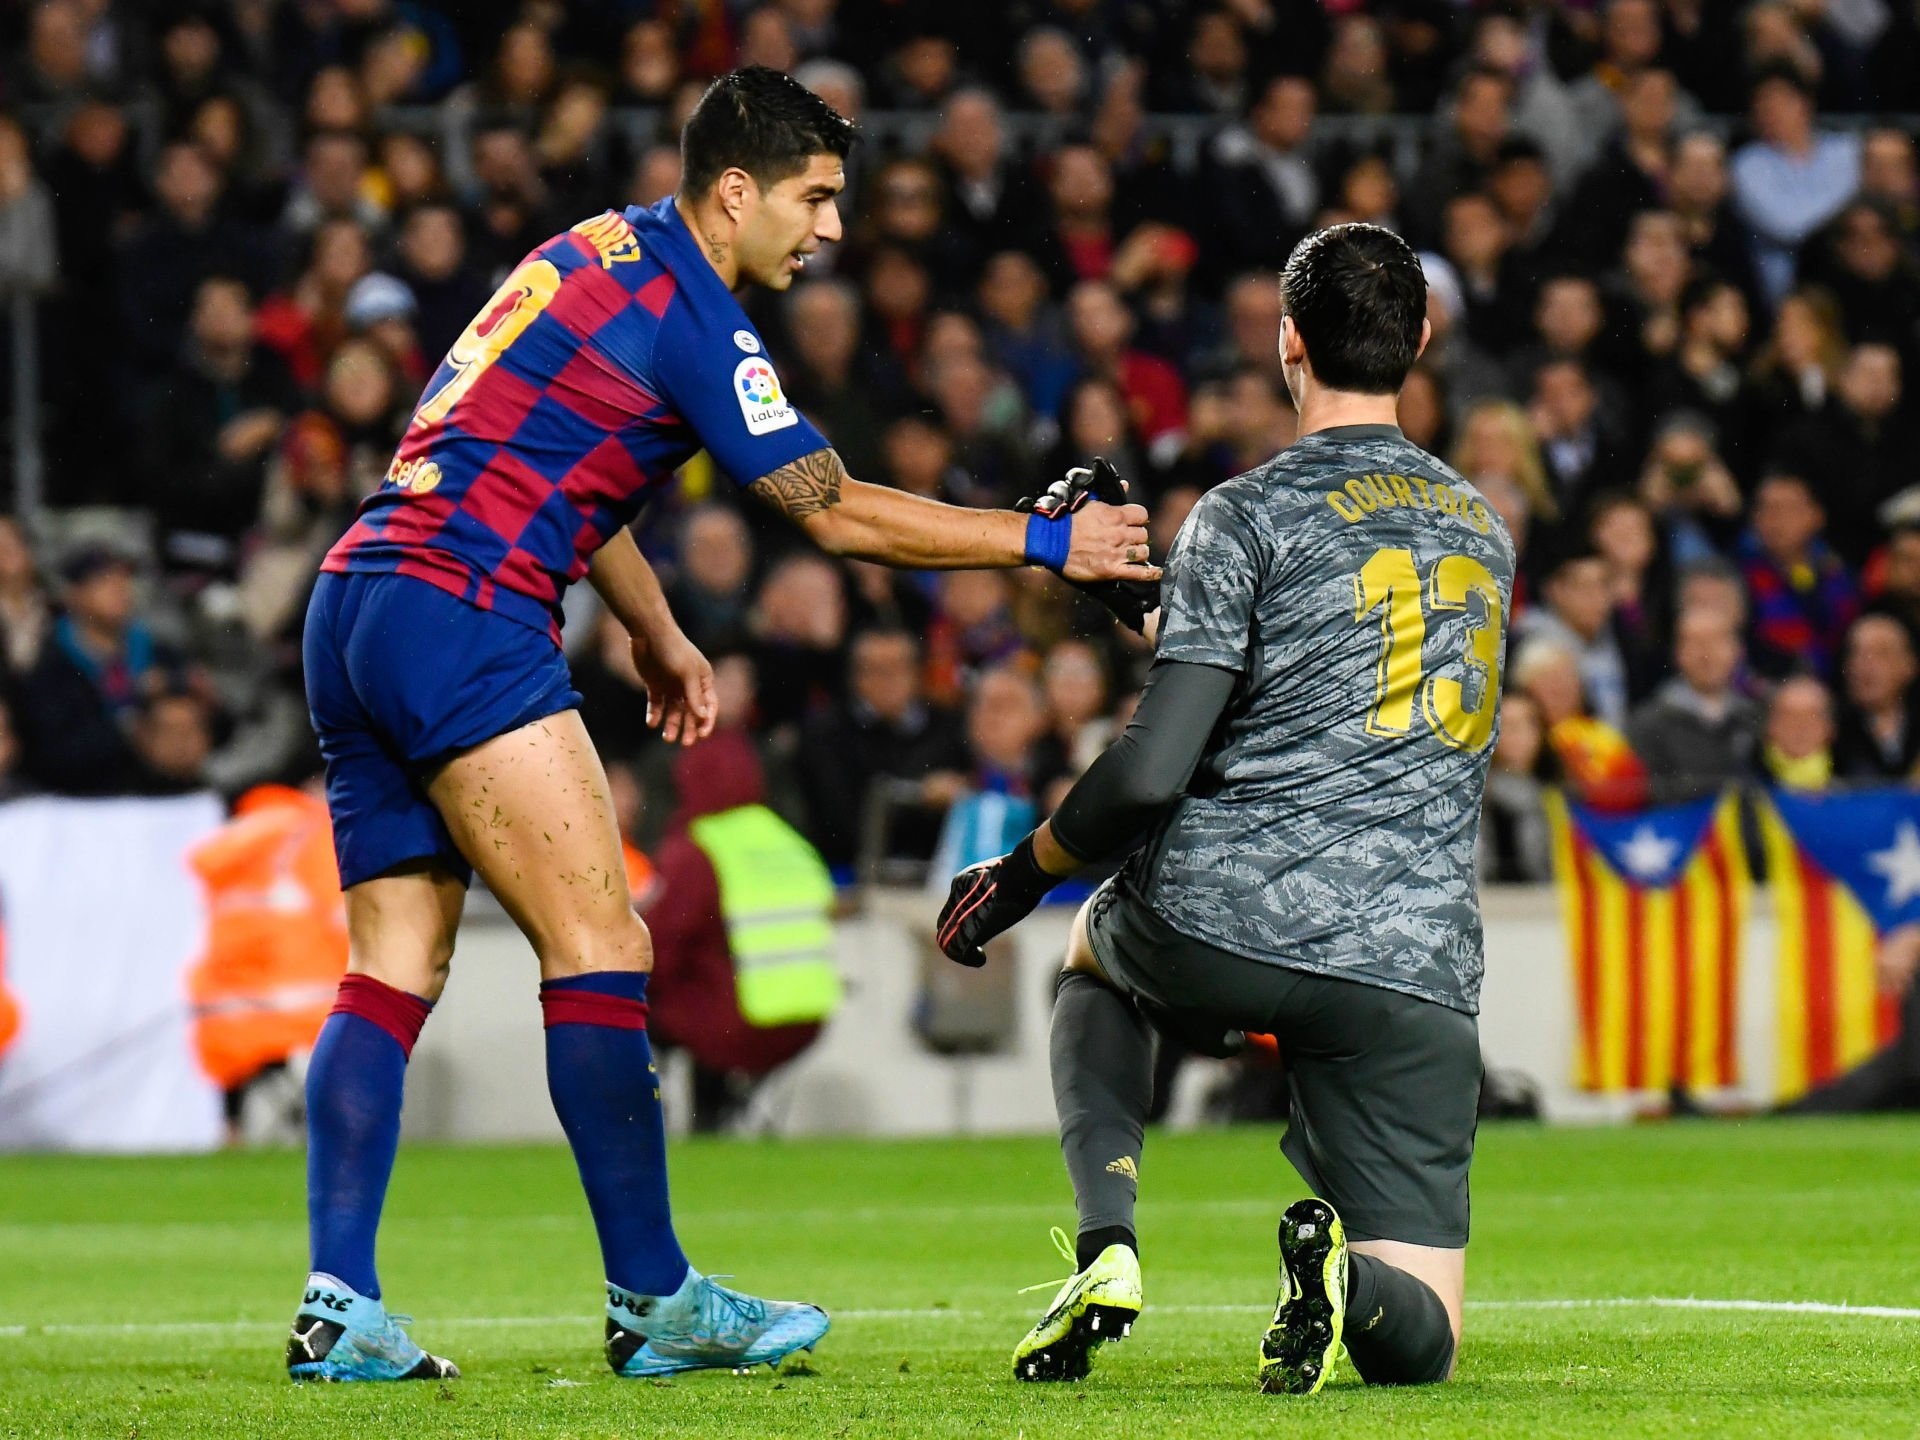 Luis Suarez of FC Barcelona and Thibaut Courtois of Real Madrid during the Liga match between Barcelone and Real Madrid at Camp Nou on December 18, 2019 in Barcelona, Spain. (Photo by Pressinphoto/Icon Sport) LIGA HISZPANSKA PILKA NOZNA SEZON 2019/2020 FOT. ICON SPORT/NEWSPIX.PL POLAND ONLY! --- Newspix.pl *** Local Caption *** www.newspix.pl mail us: info@newspix.pl call us: 0048 022 23 22 222 --- Polish Picture Agency by Ringier Axel Springer Poland